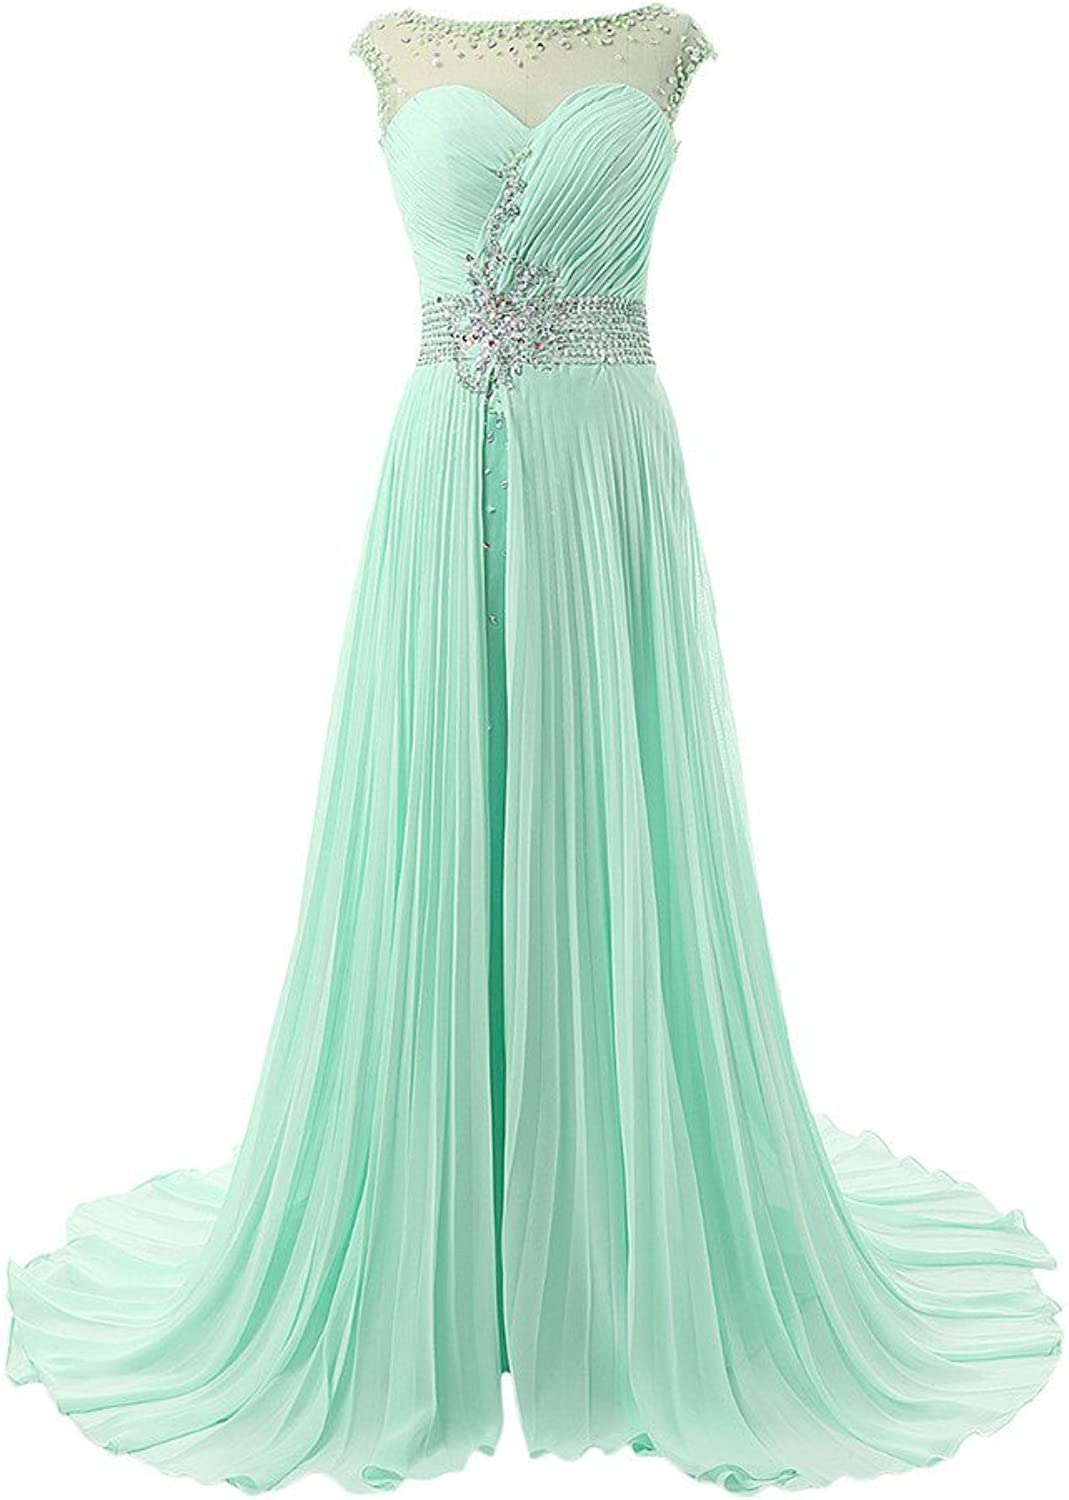 Avril Dress Tulle Beading Pleated Fold Illusion Neckline Prom Evening Dress